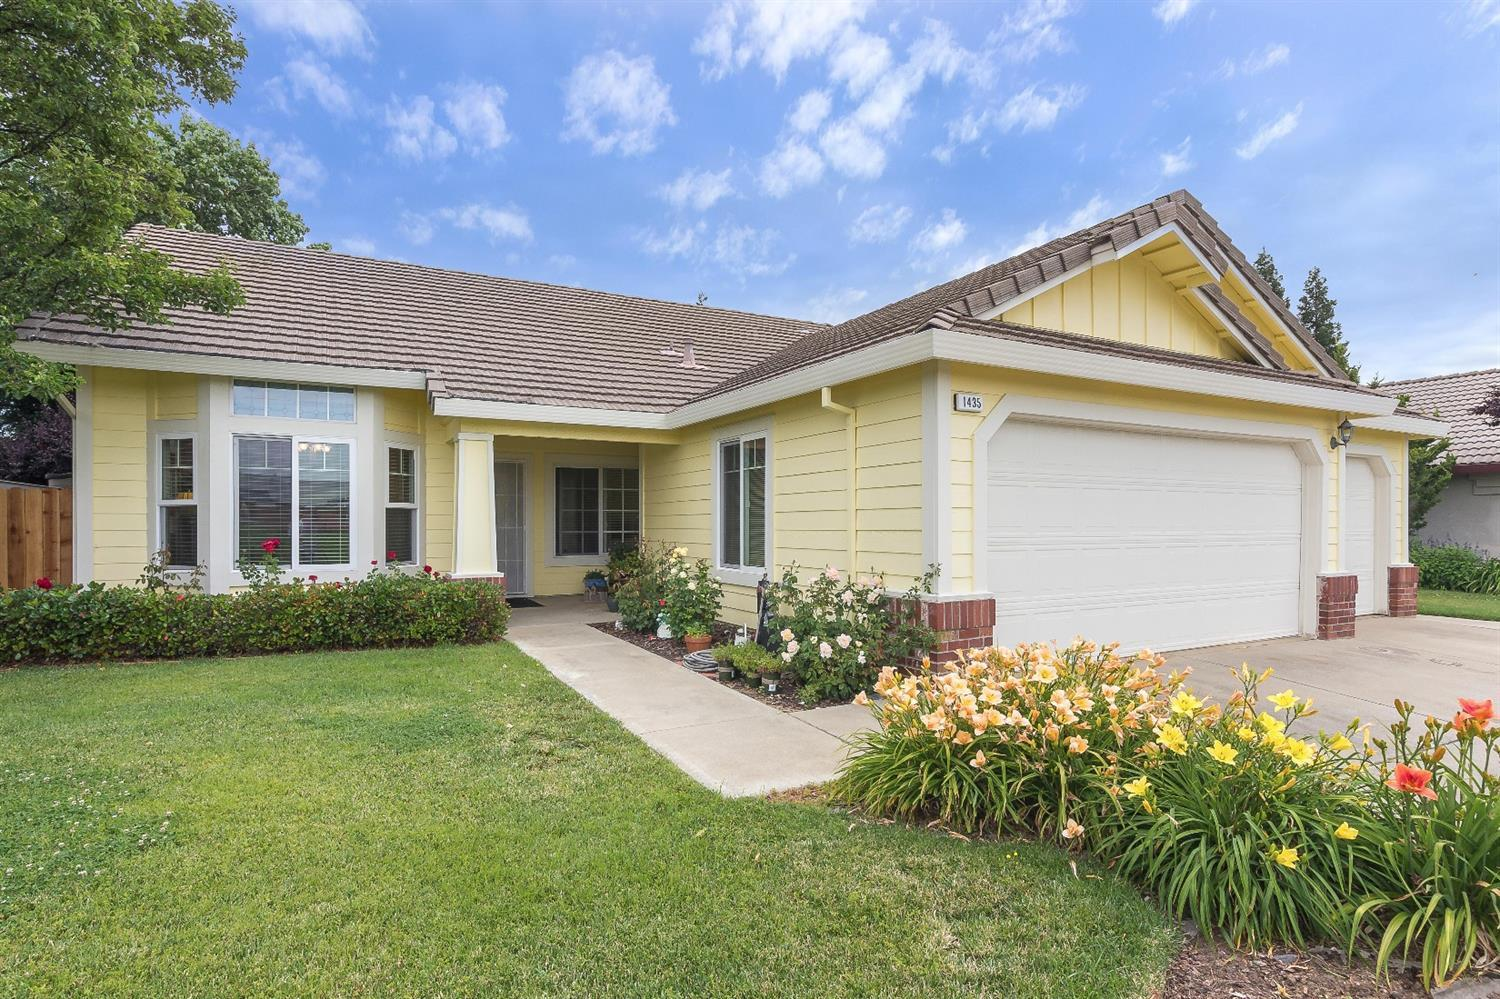 1435 Calle Las Casas Roseville Ca Mls 17036846 Better Homes And Gardens Real Estate